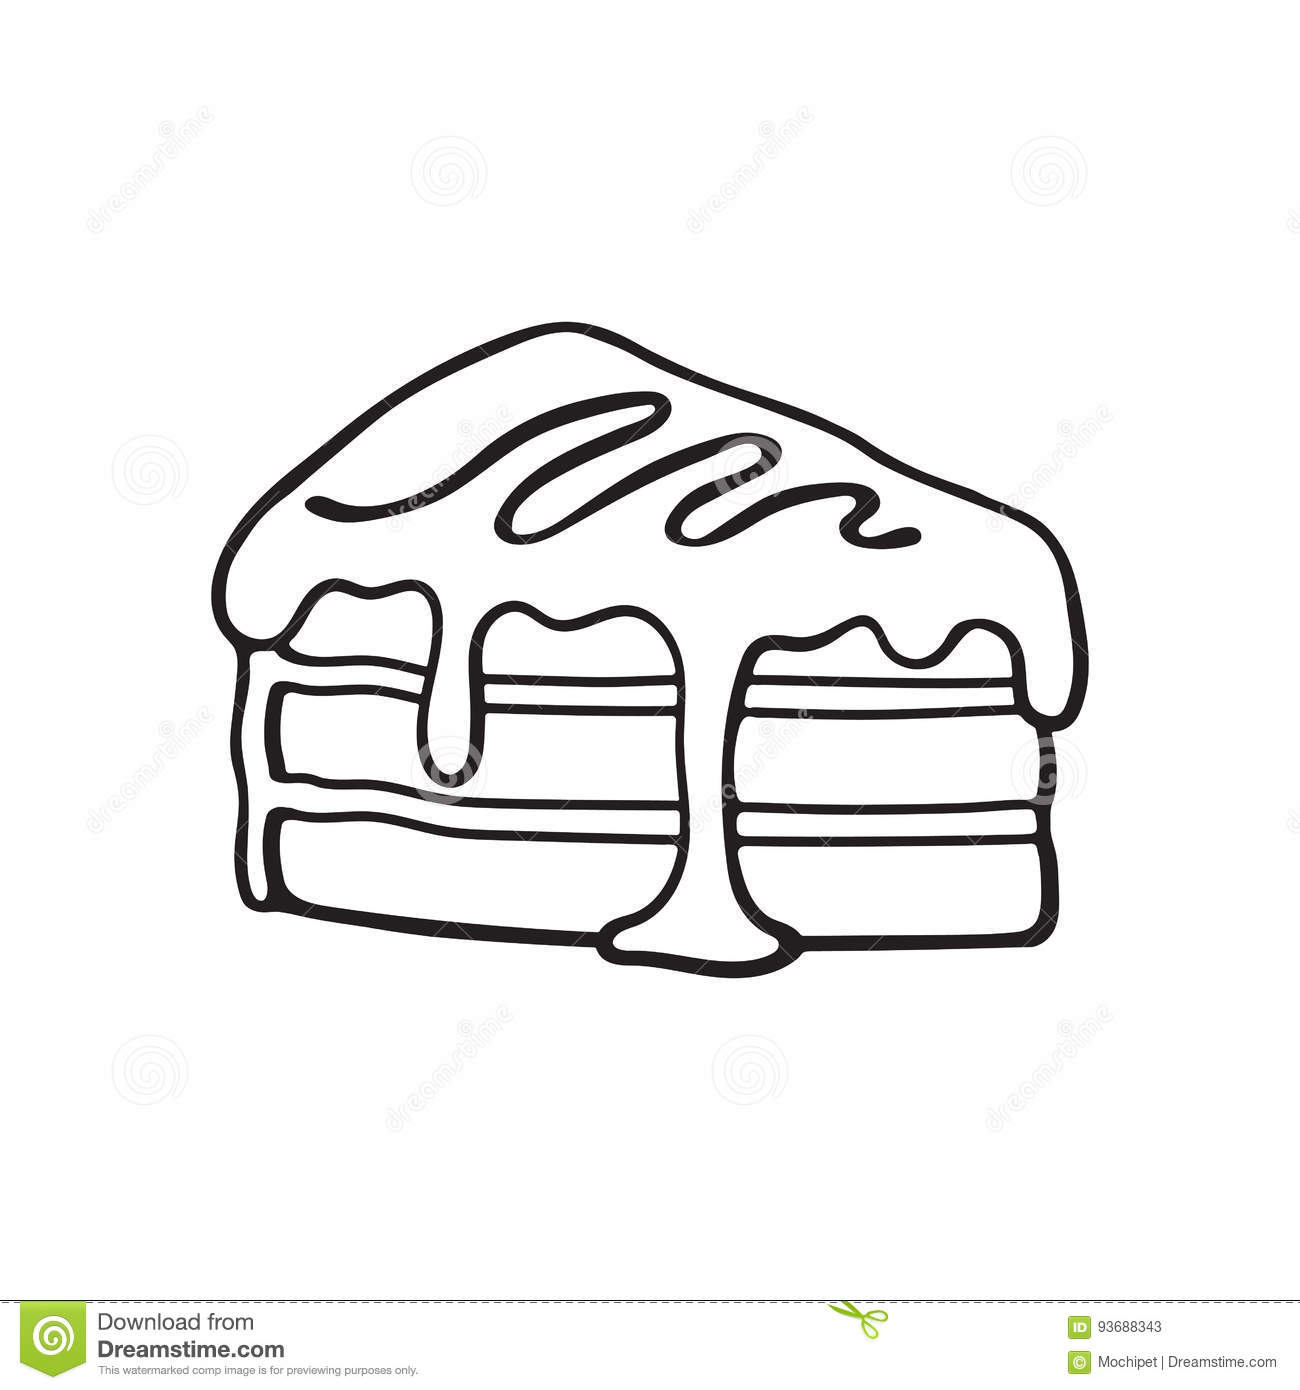 Doodle Of A Piece Of Cake With Cream And Syrup Stock